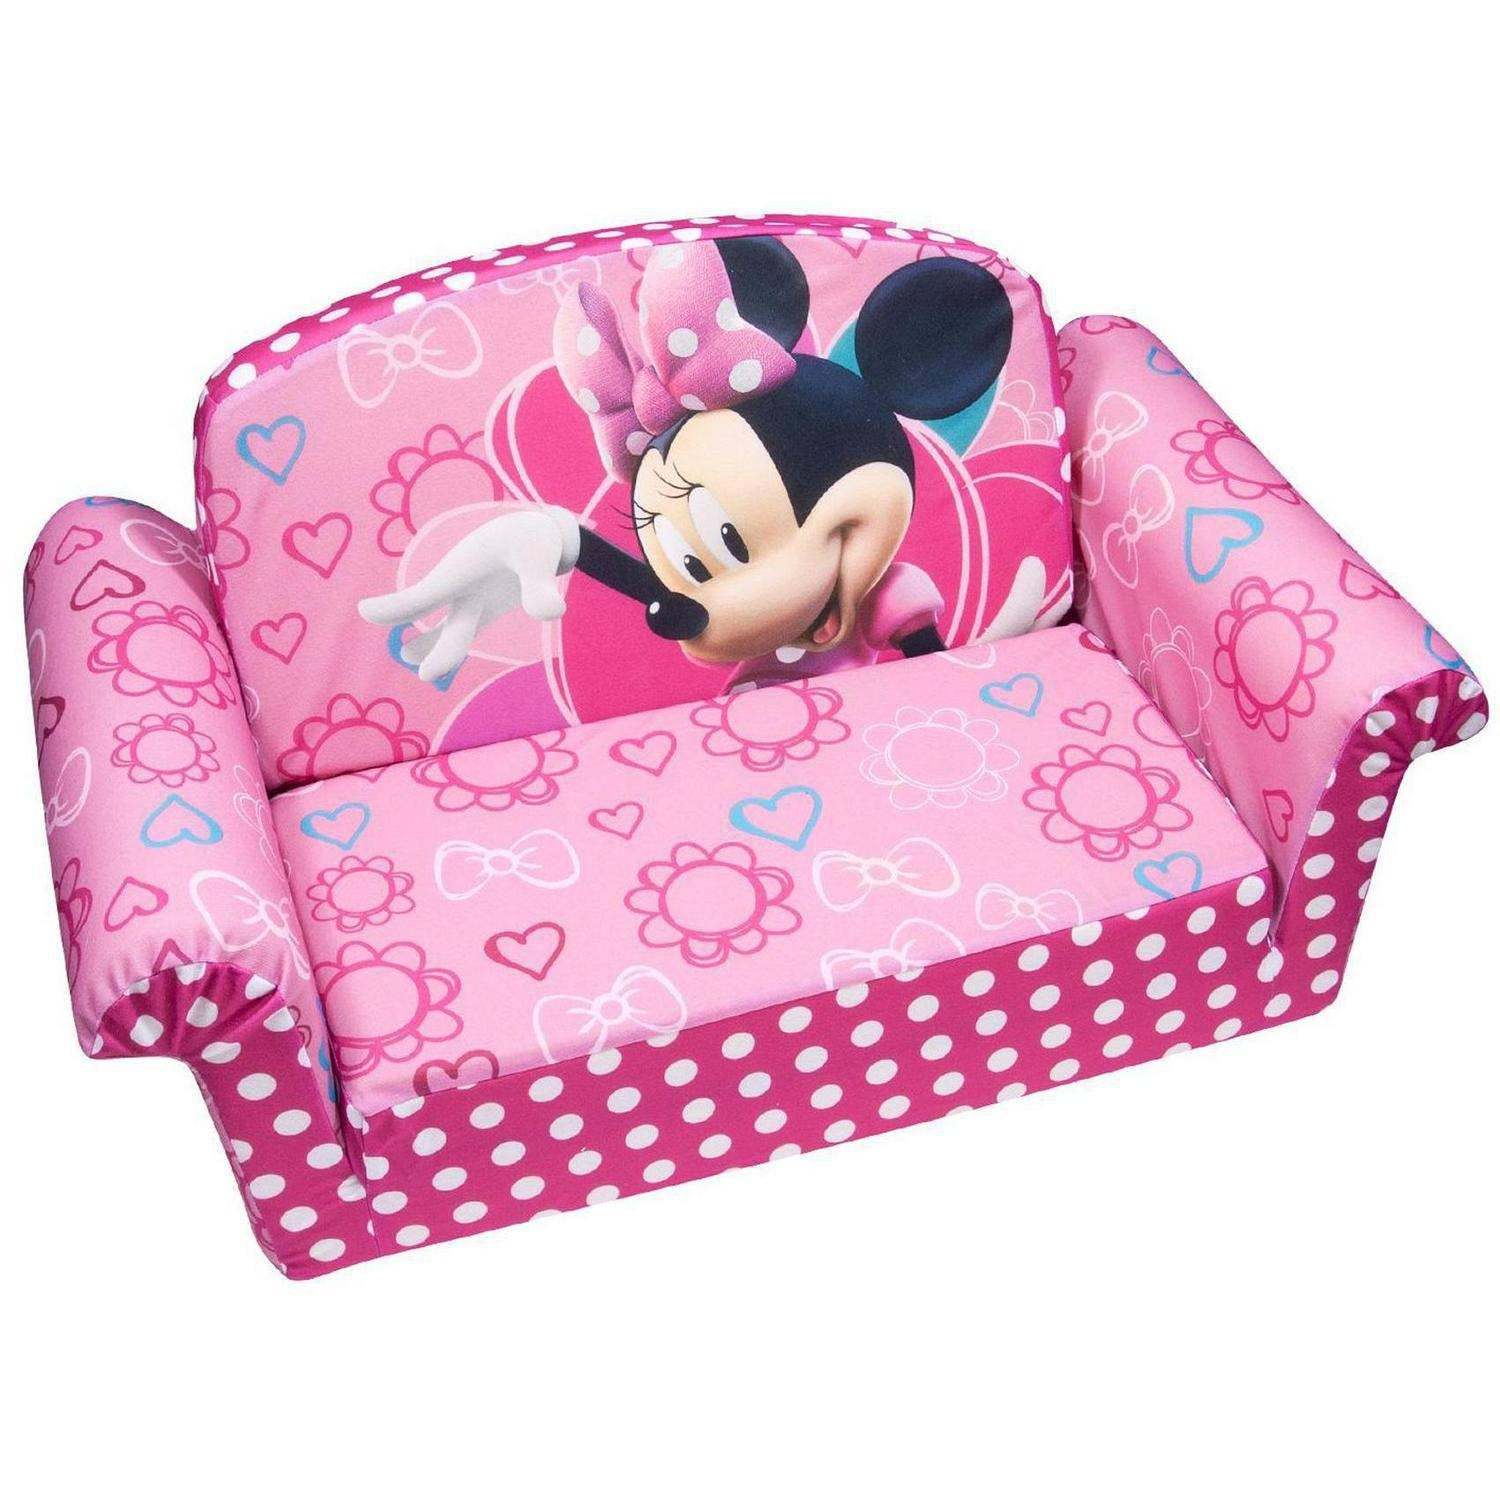 sofa bed for baby philippines teenager 20 inspirations beds ideas